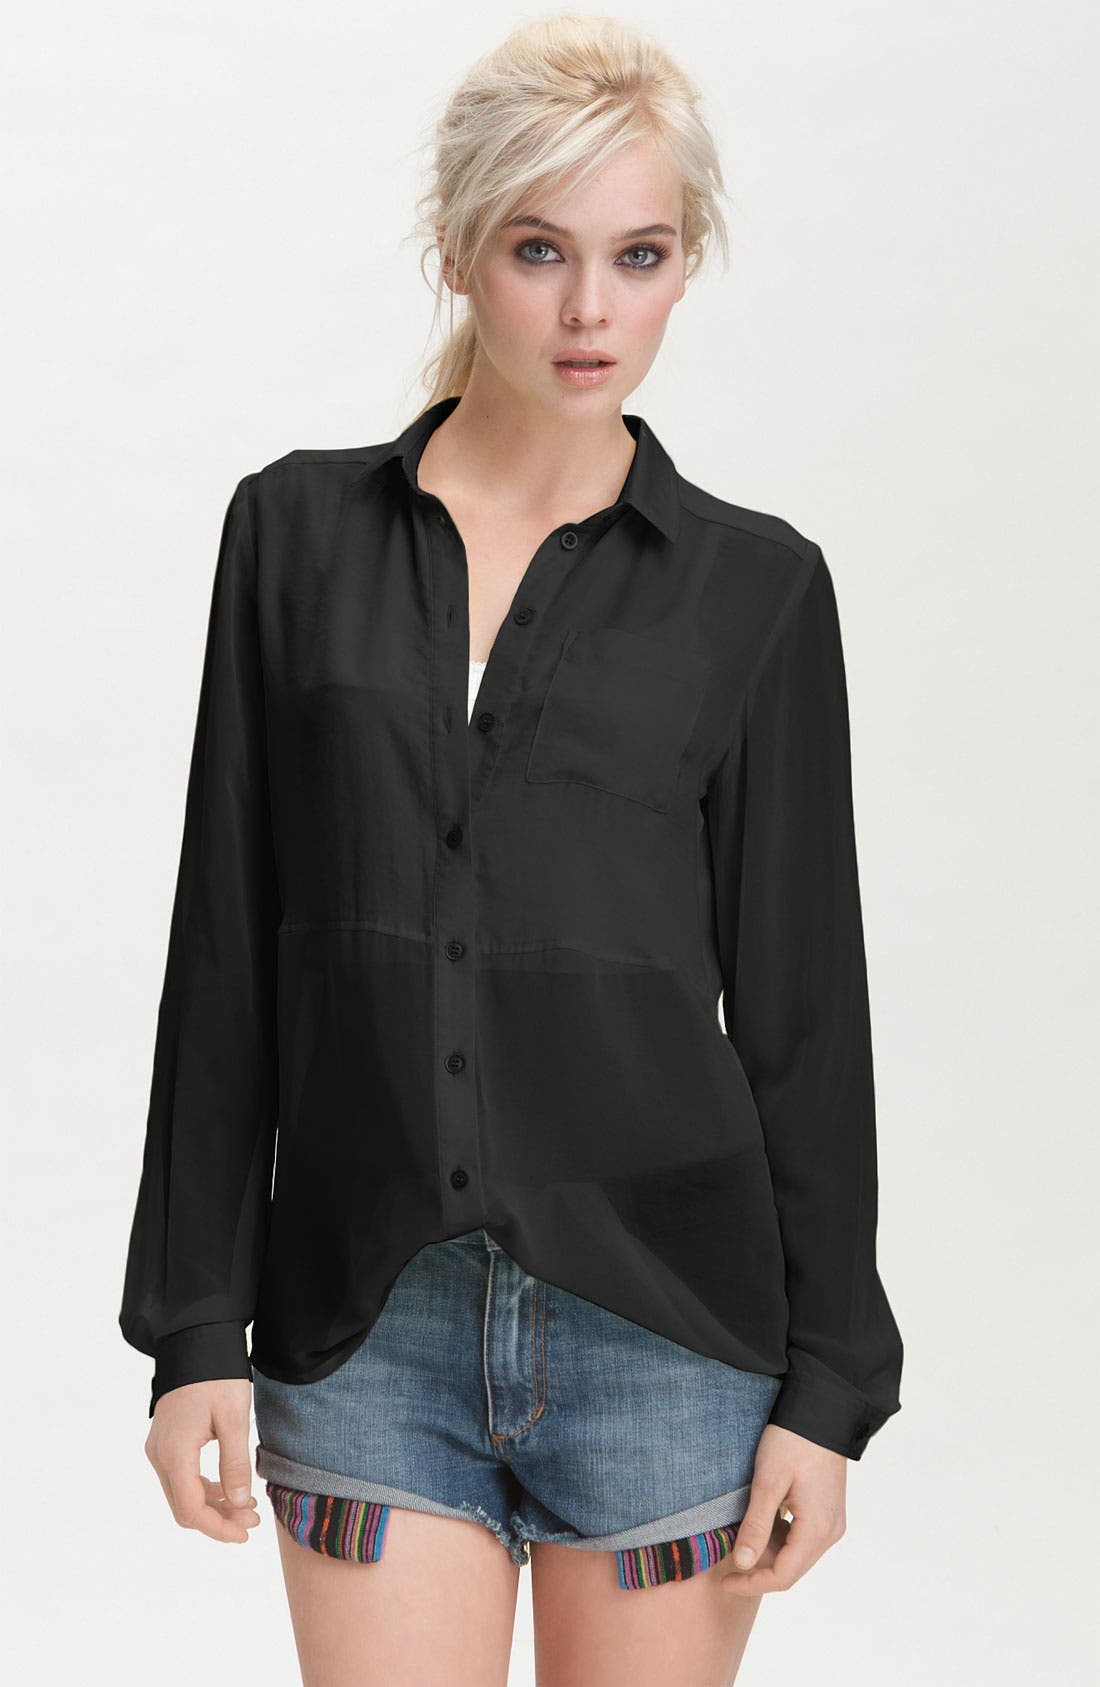 Alternate Image 1 Selected - Free People 'Best of Both Worlds' Sheer Panel Shirt